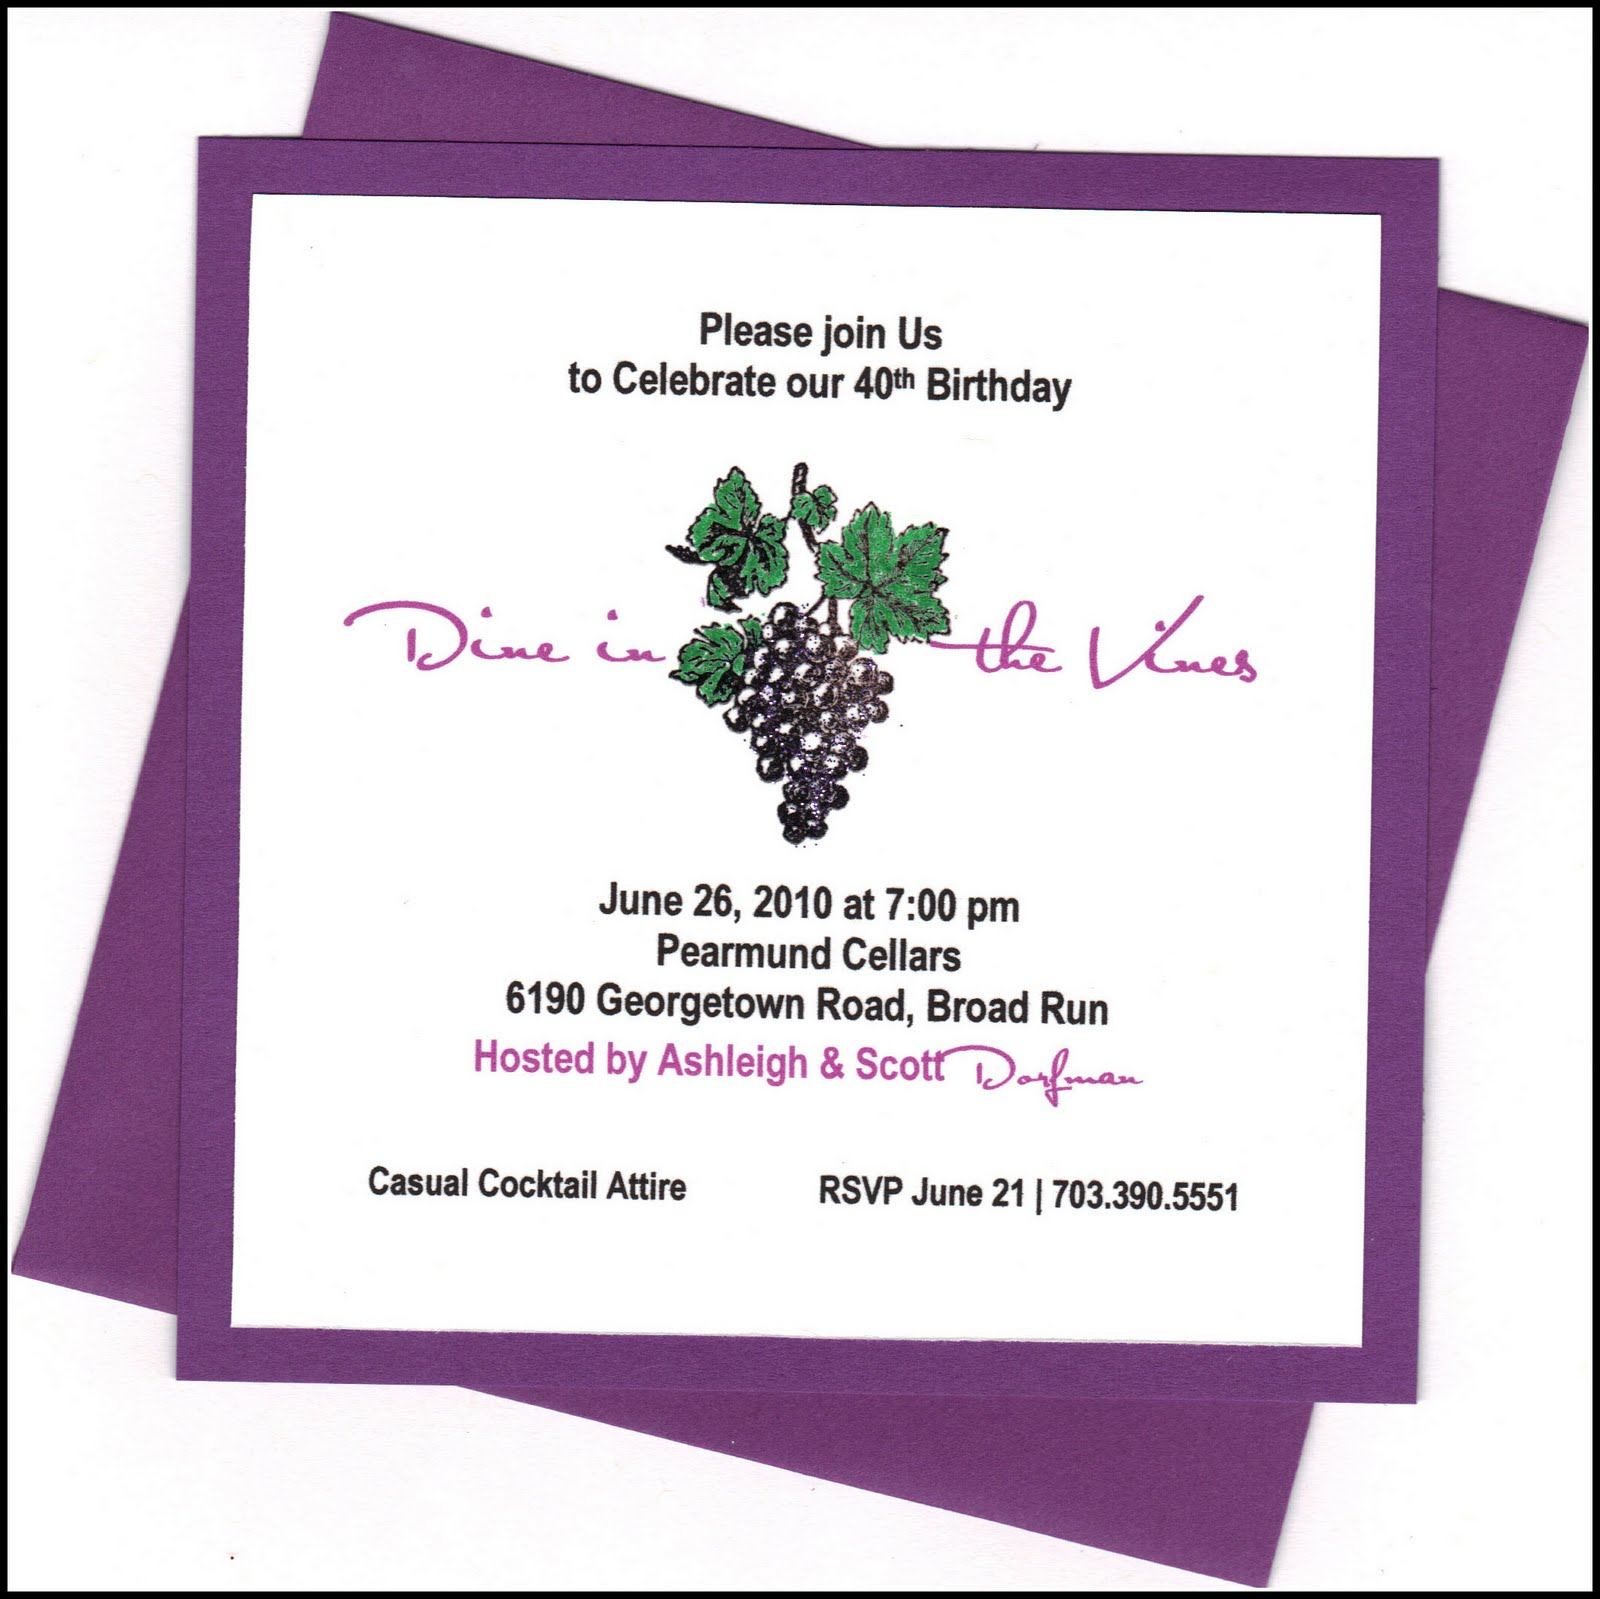 Dine In The Vines Invite Birthday Party Ideas Northern Virginia